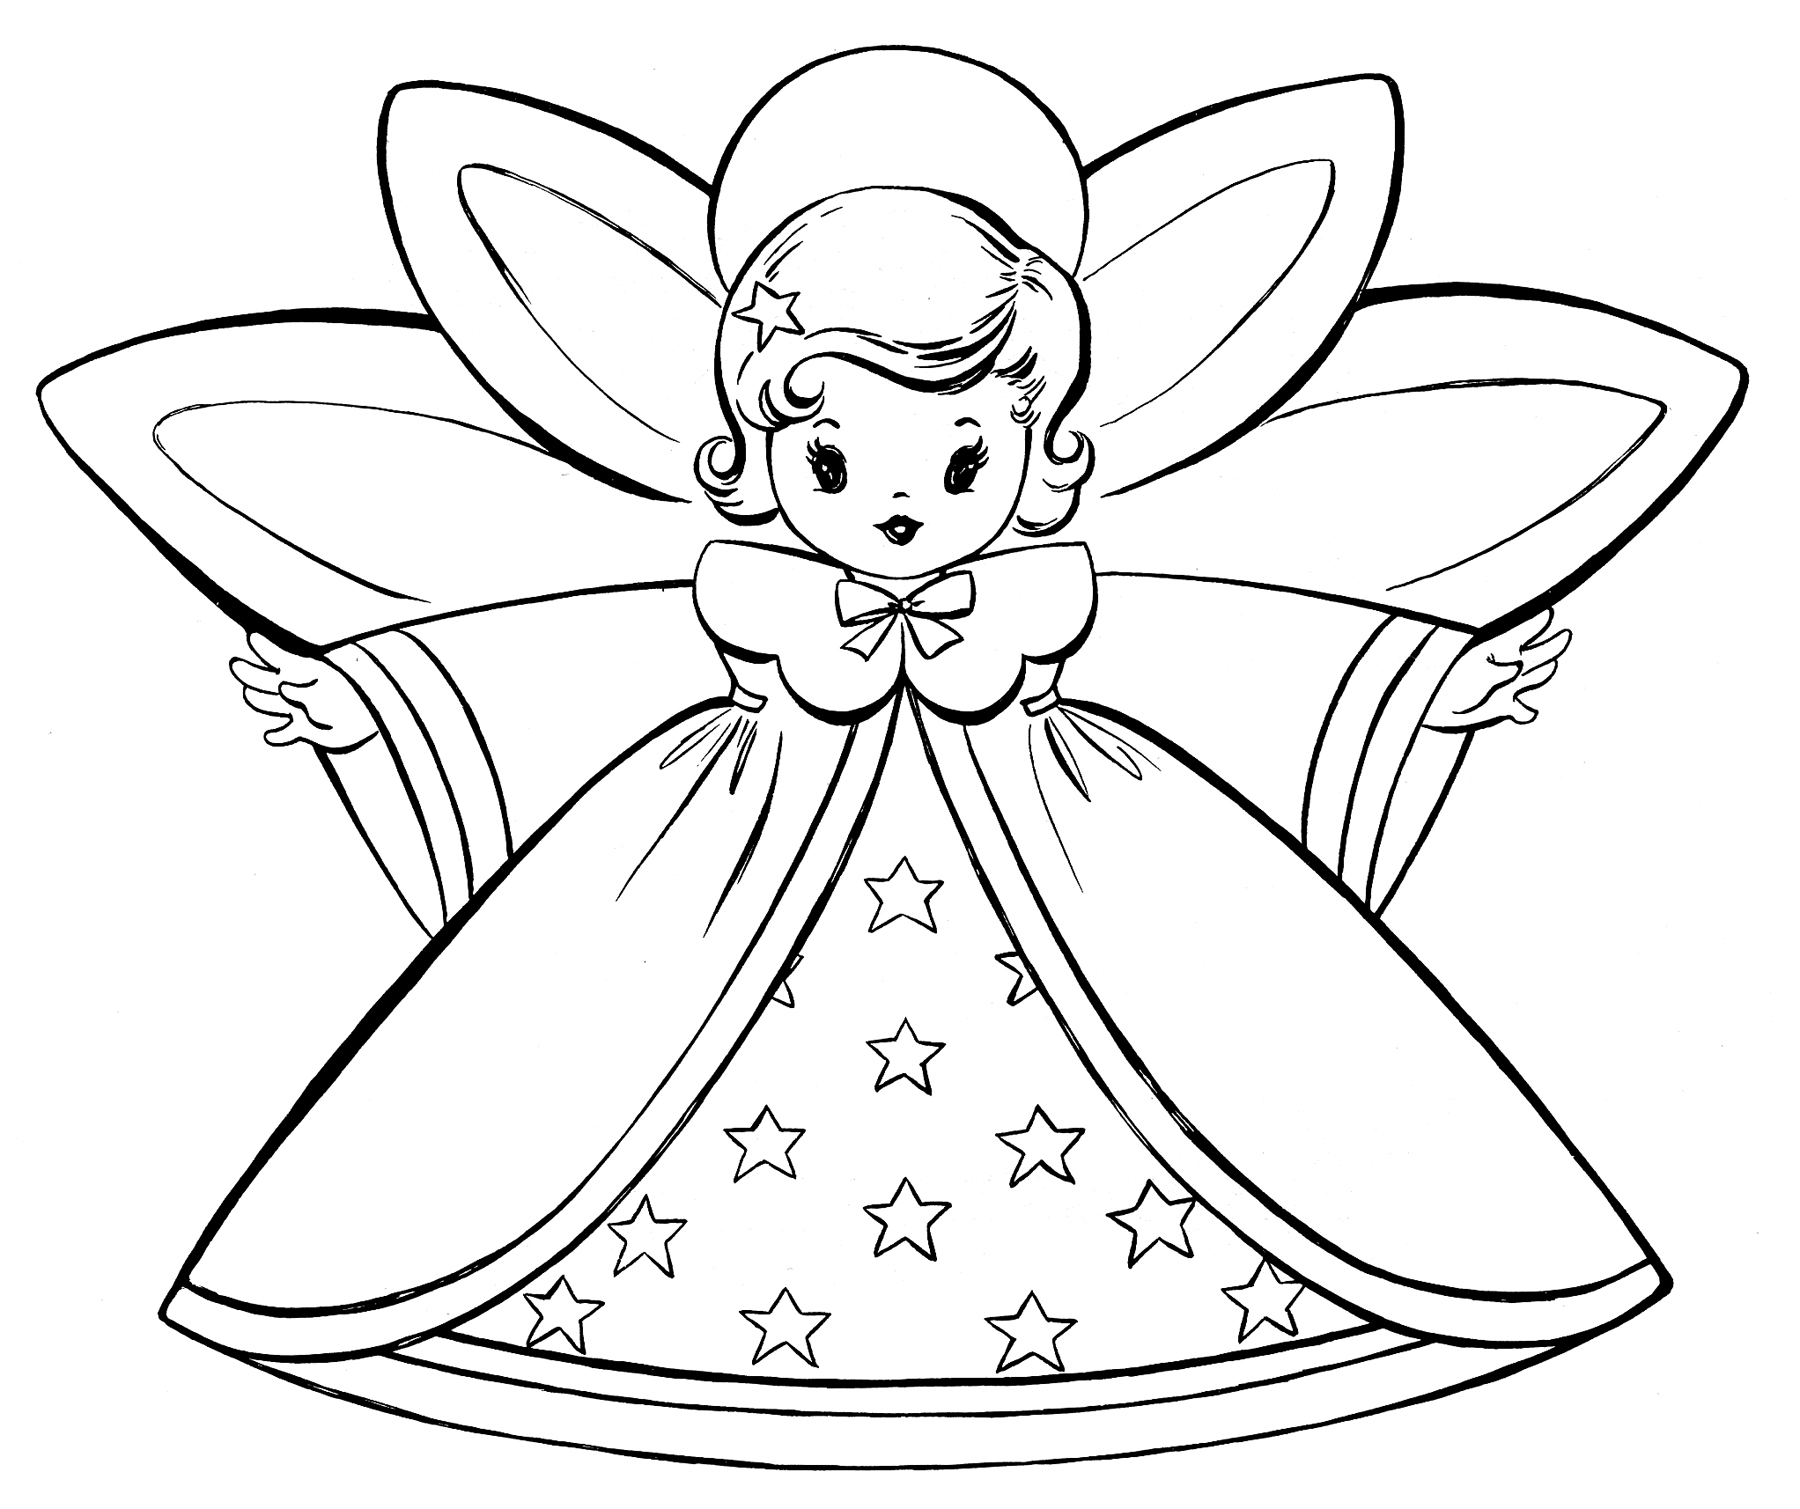 Free Christmas Coloring Pages Retro Angels The Graphics Fairy Download Owl With Gift Boxes Page Printable